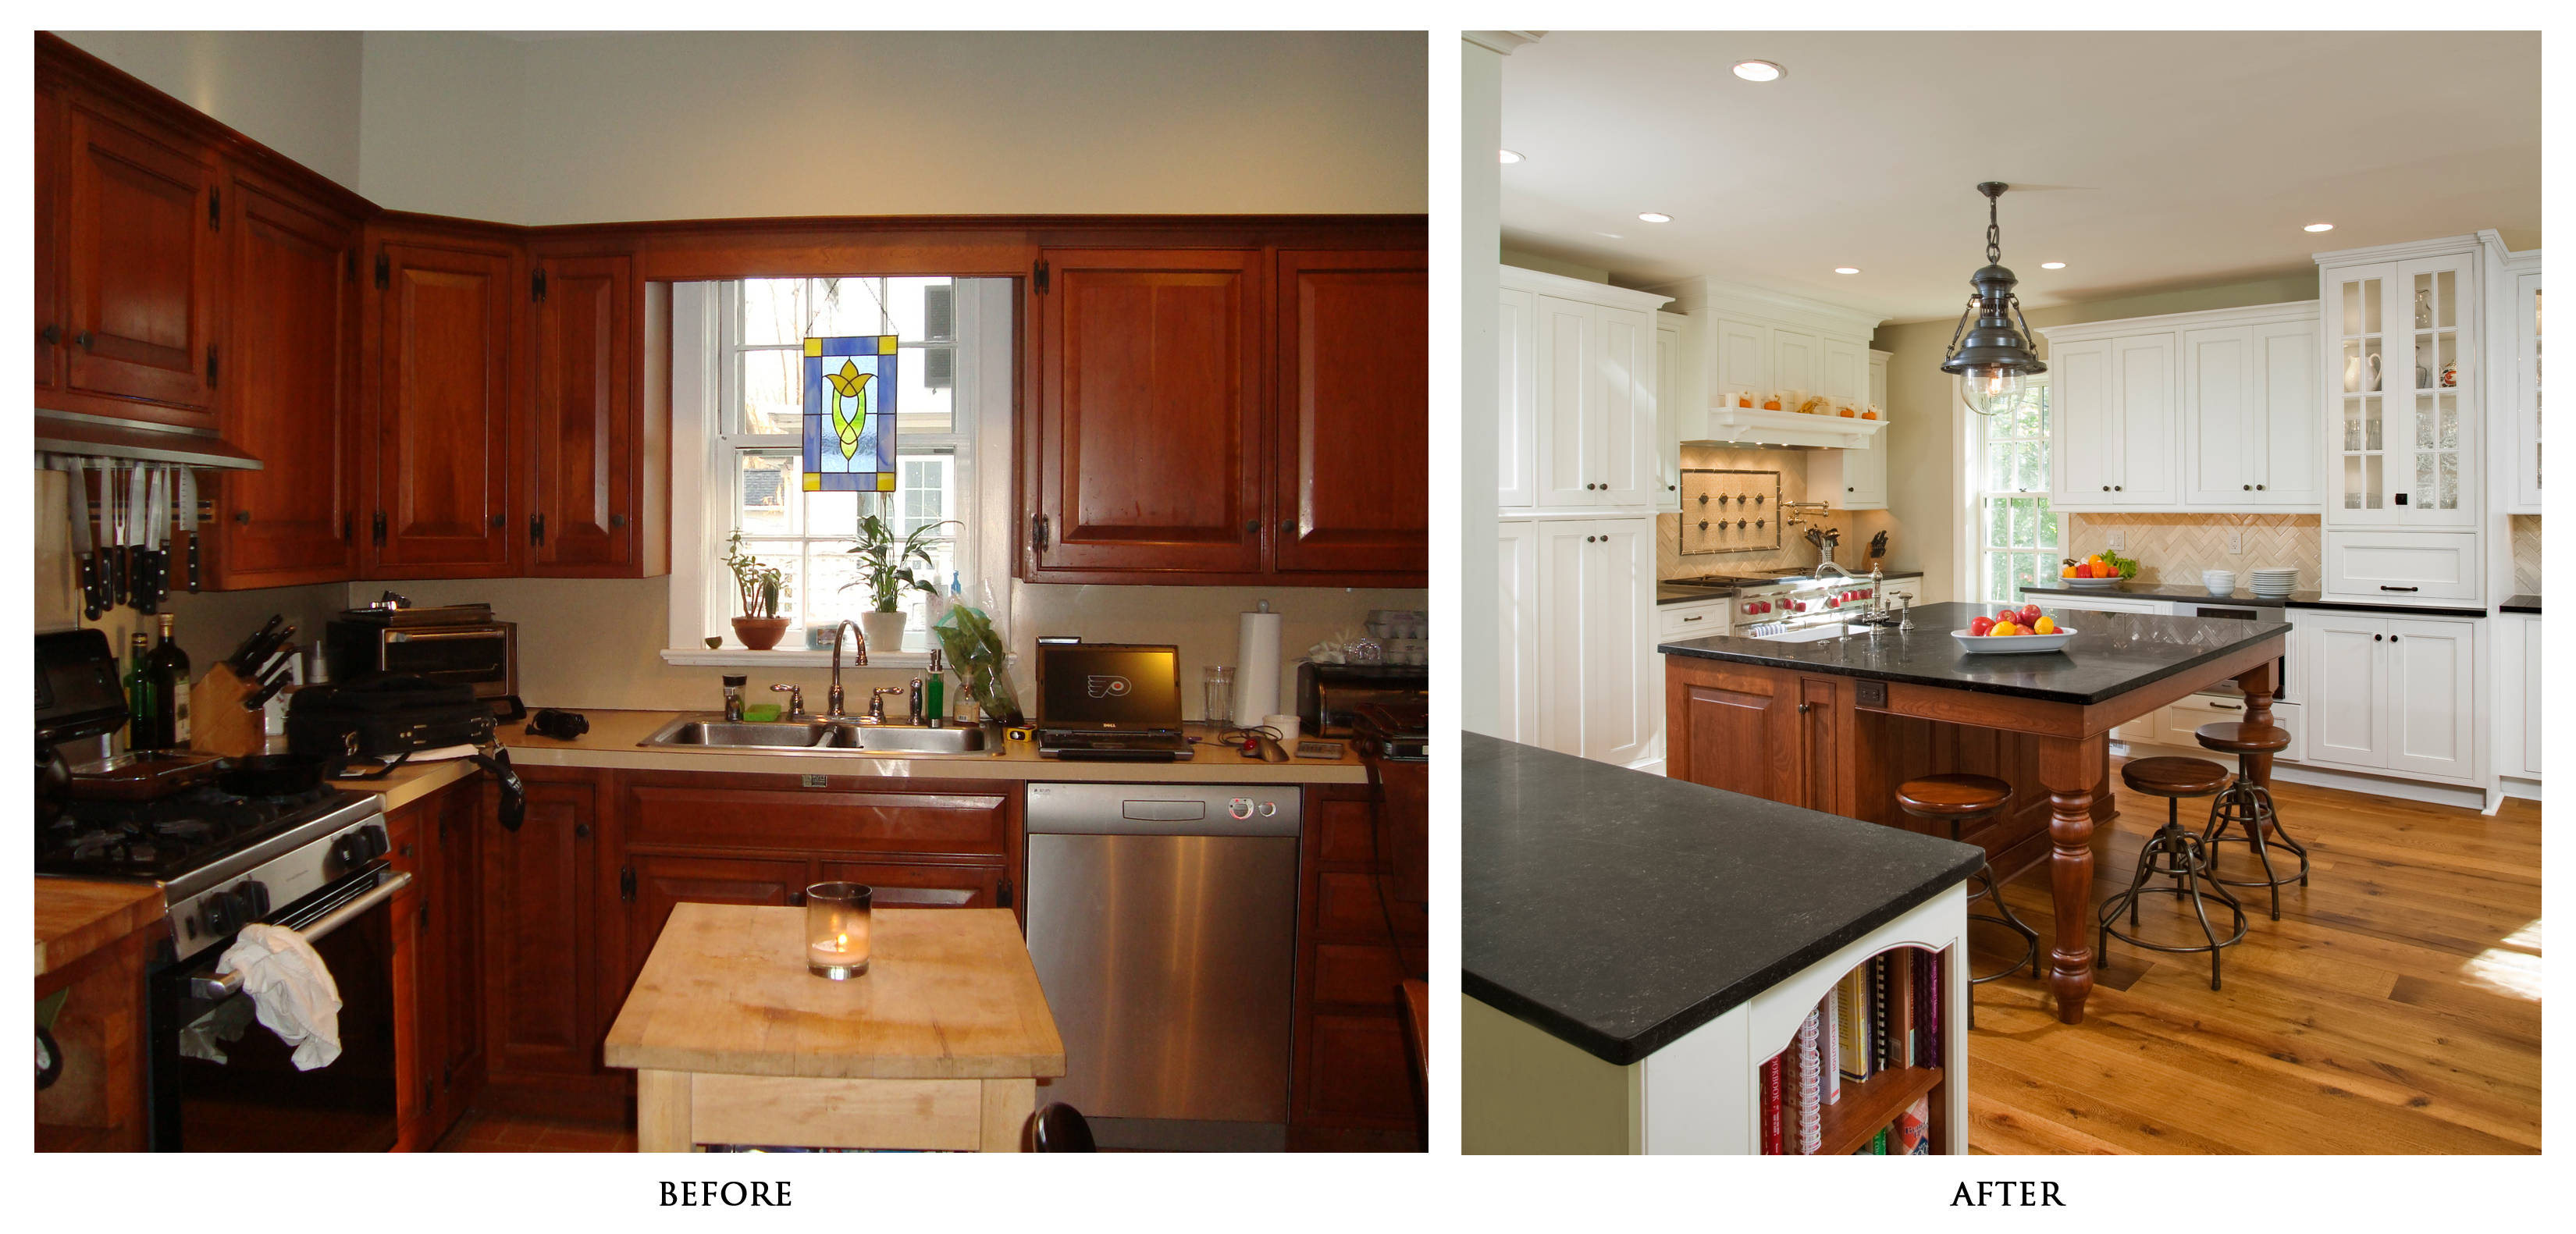 Kitchen Before And After get the fresh and cool outlook inspiration with kitchen remodeling